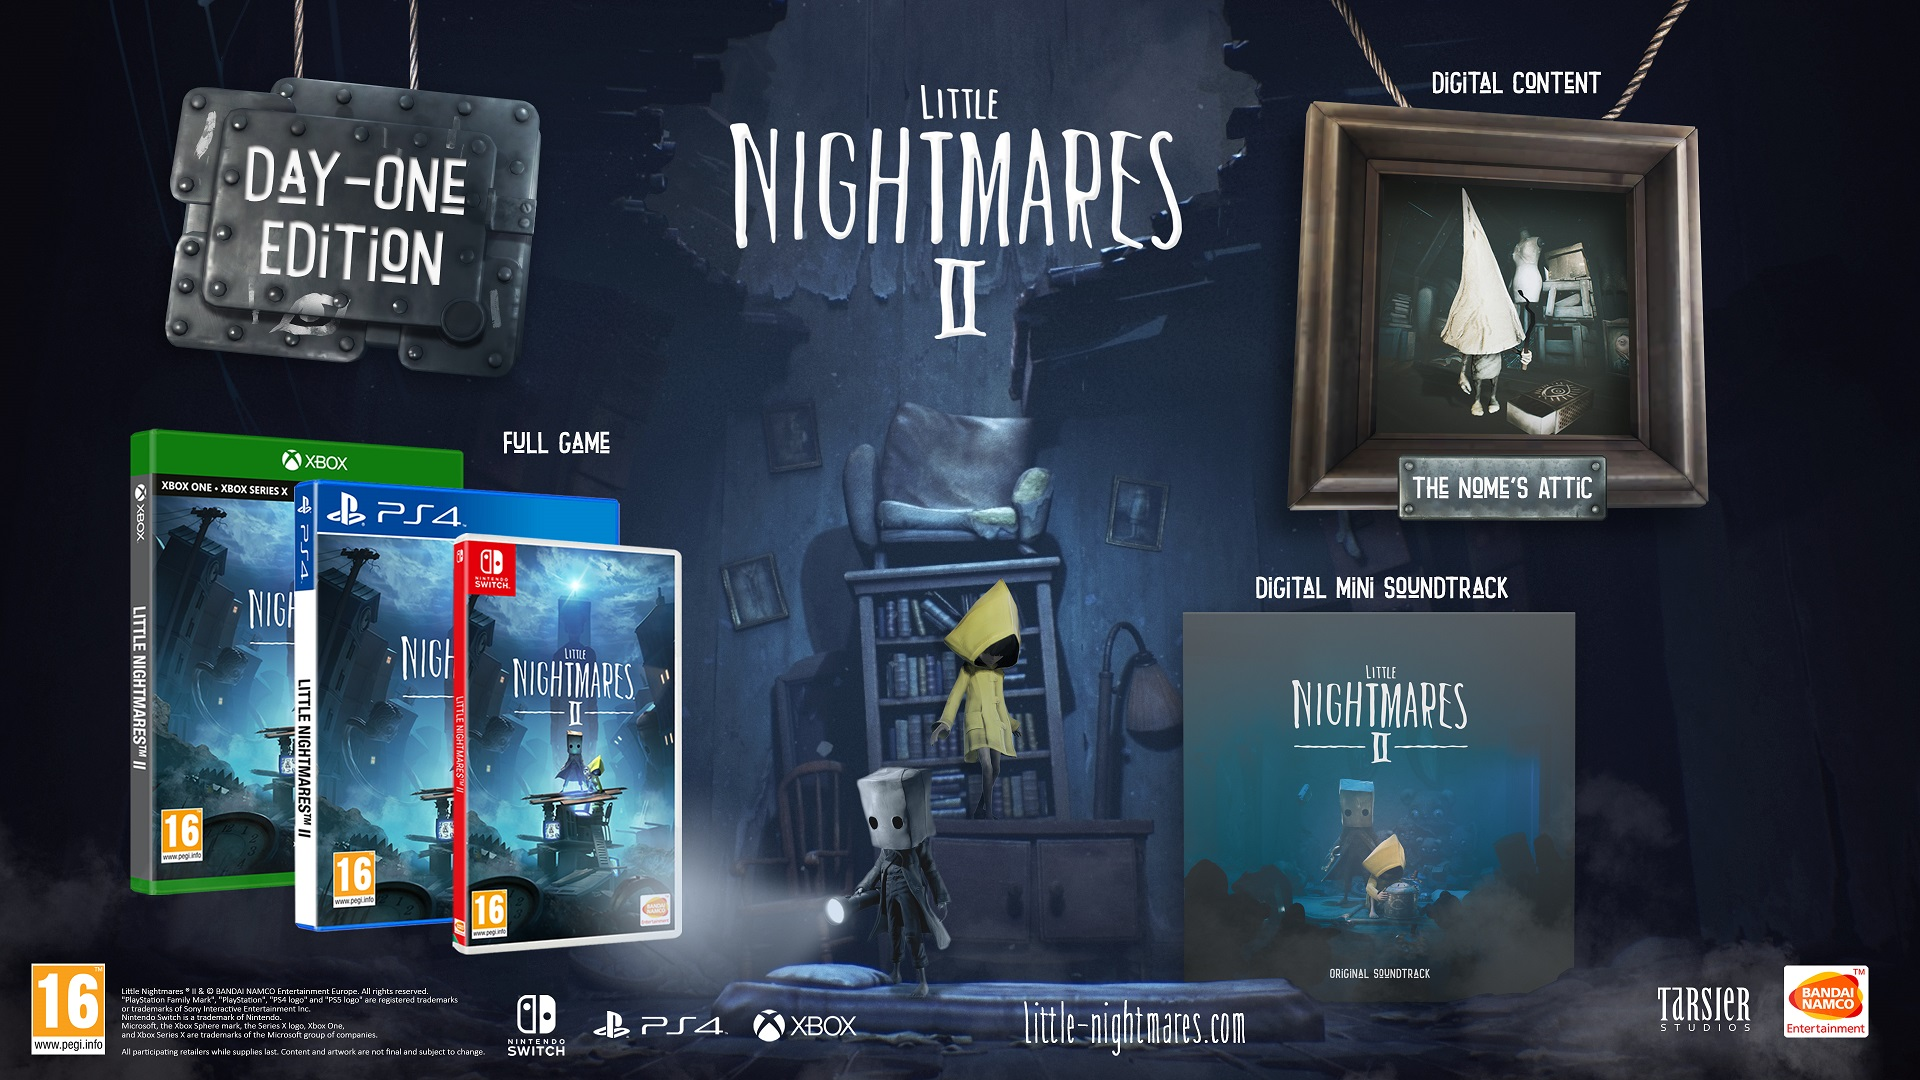 Little Nightmares II Day One Edition